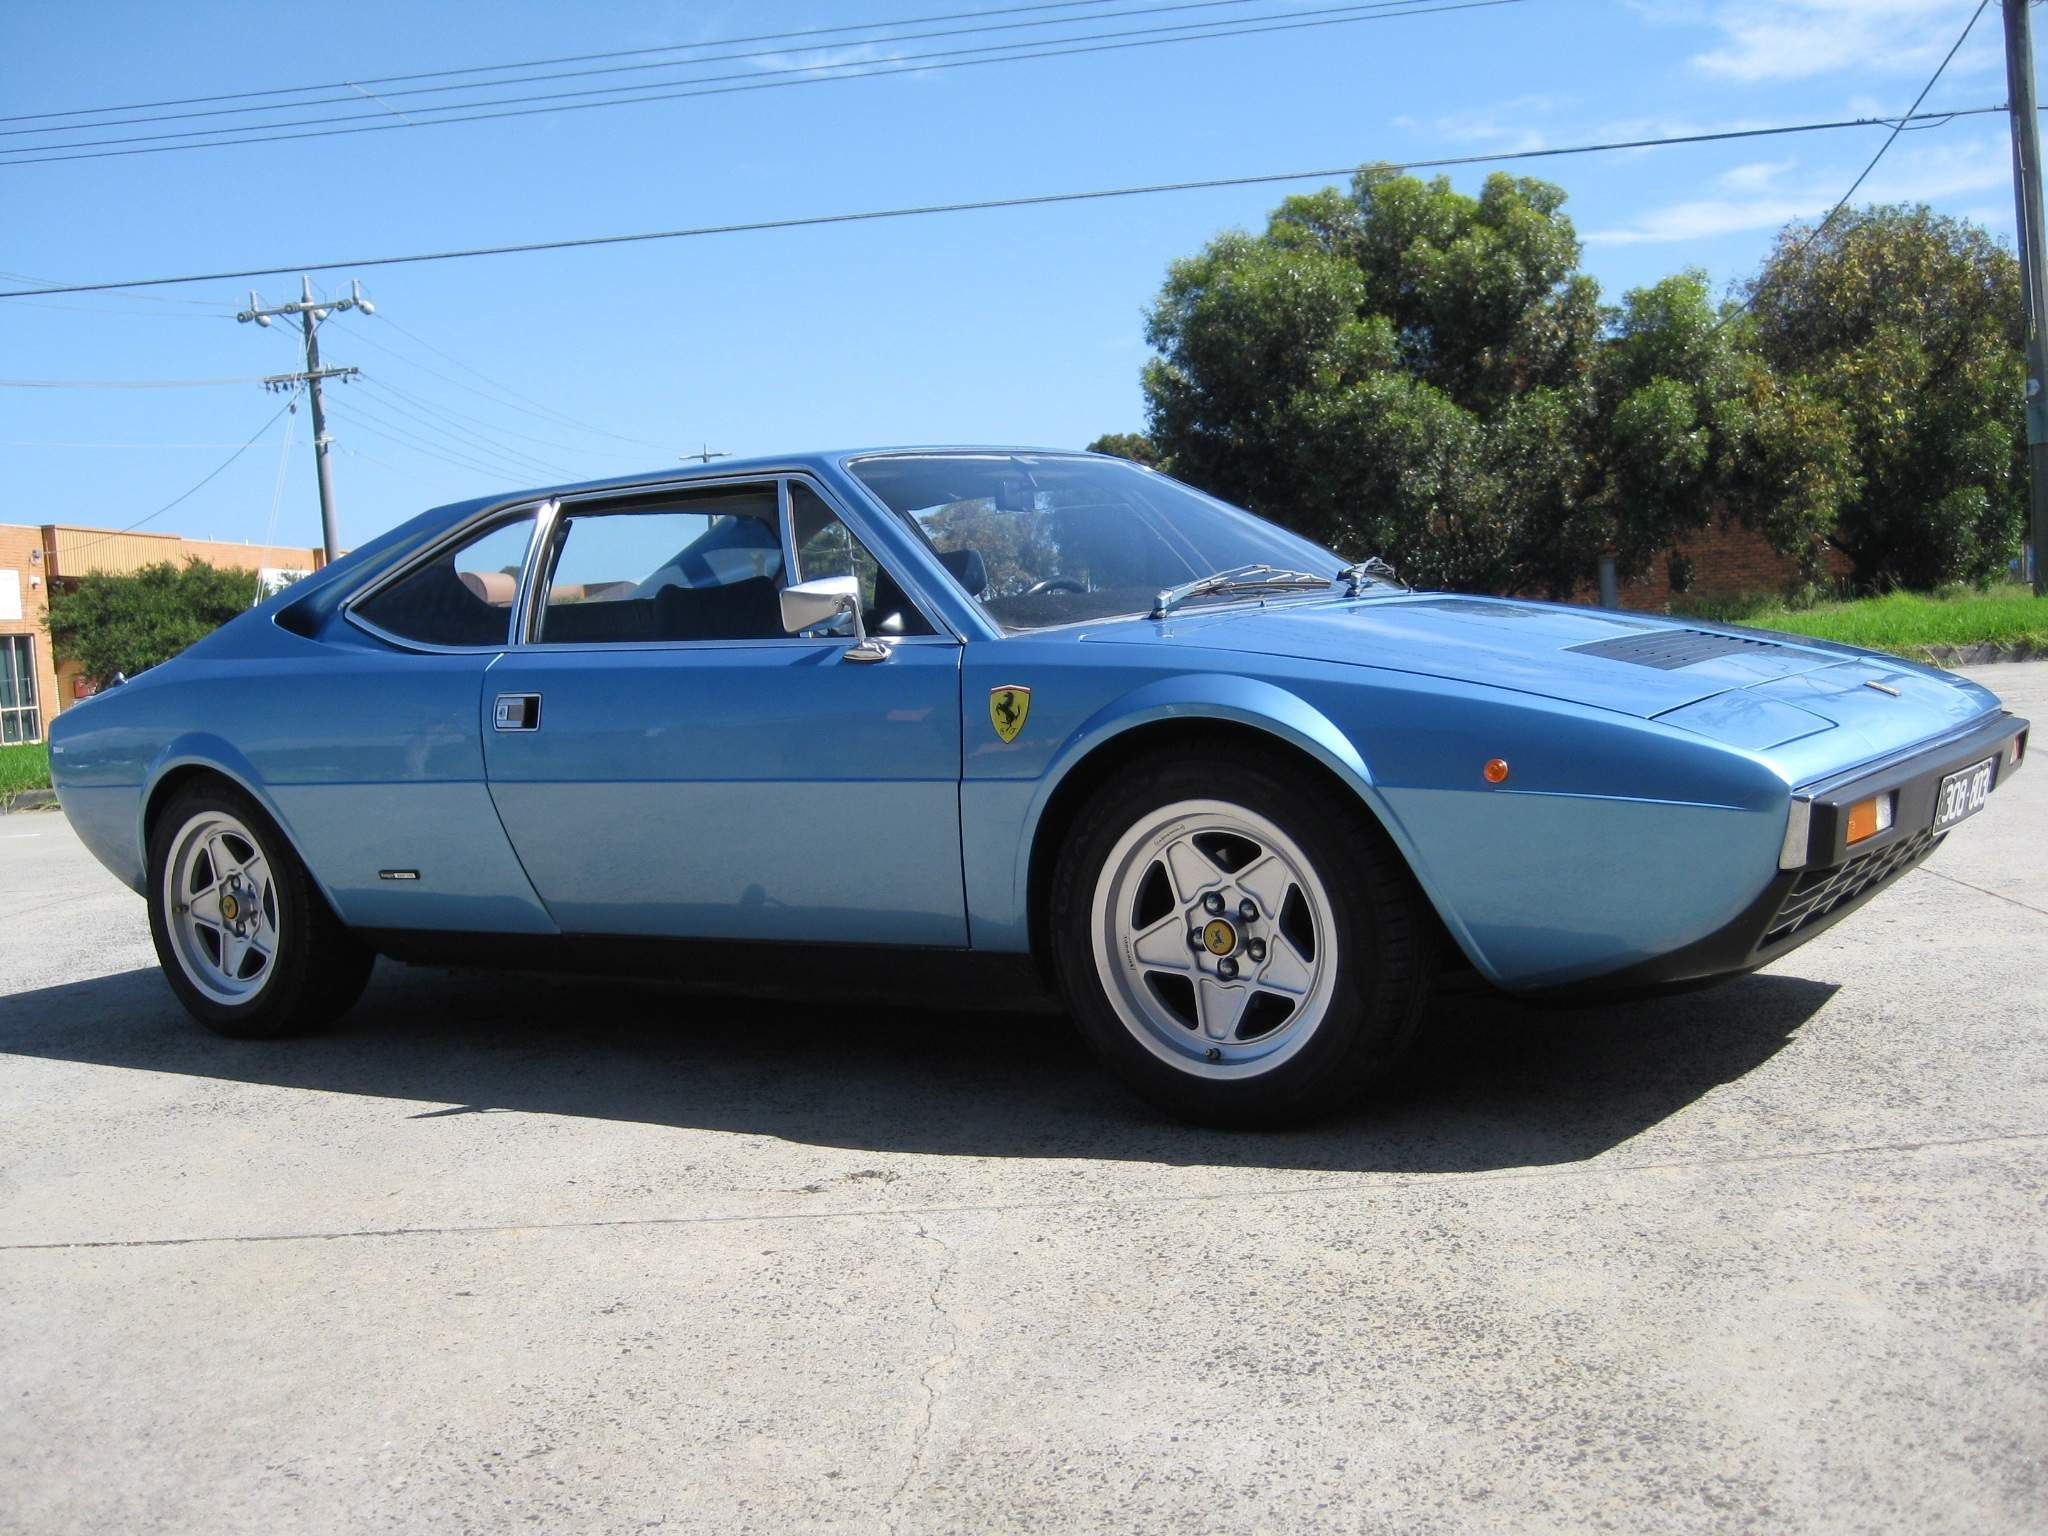 Ferrari 308 Gt4 Ferrari For Sale Ferrari Ferrari Car